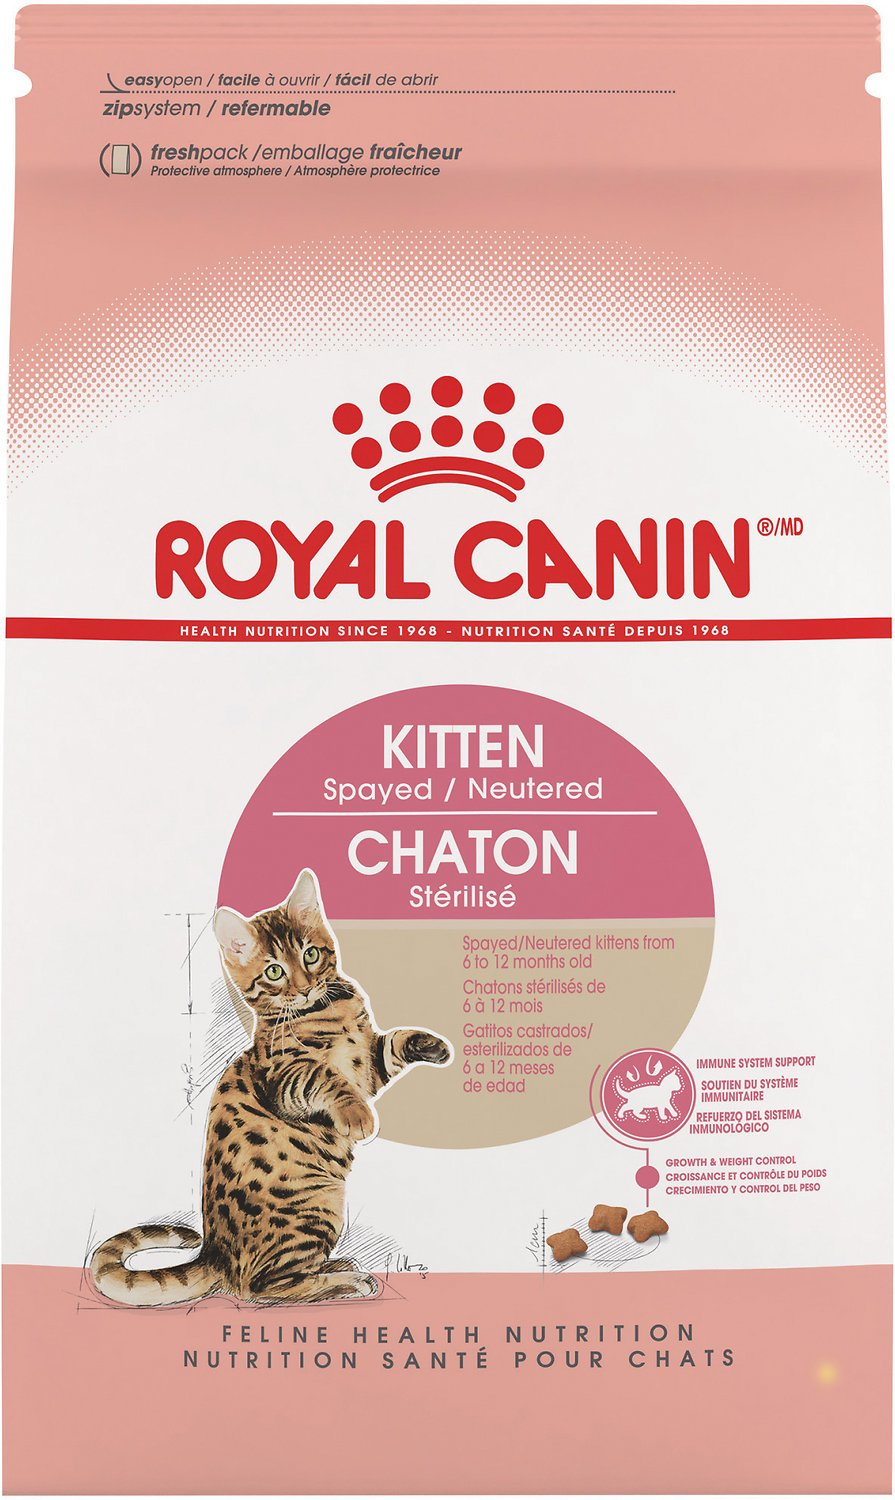 Royal Canin Puppy Food >> Royal Canin Kitten Spayed/Neutered Dry Cat Food, 2.5-lb bag - Chewy.com